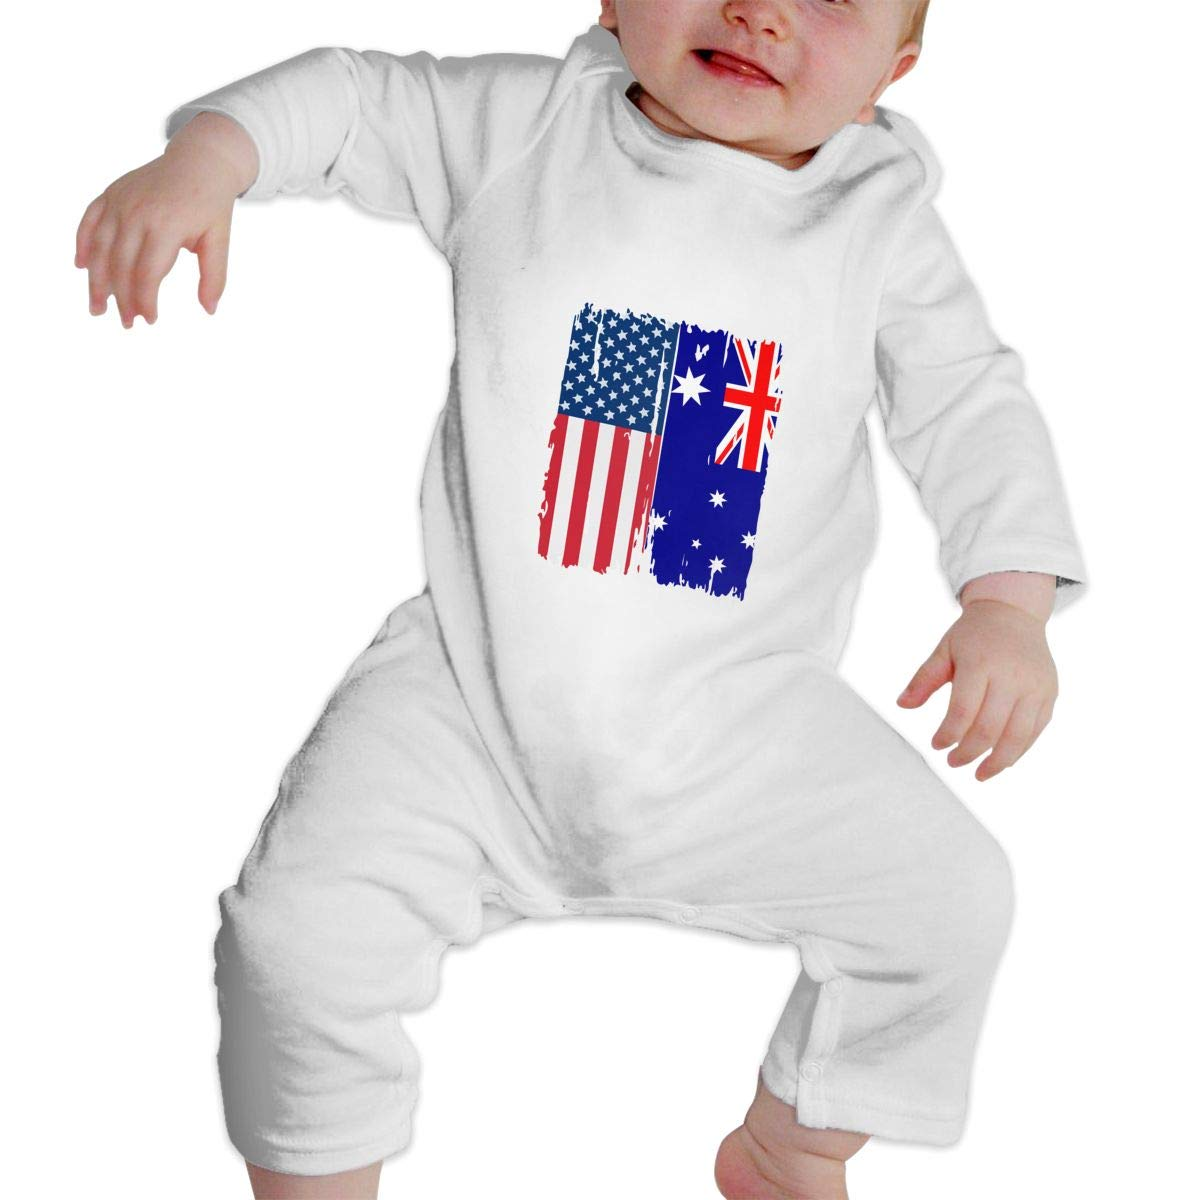 A1BY-5US Infant Babys Cotton Long Sleeve American Australian Flag Jumpsuit Romper Funny Printed Romper Clothes